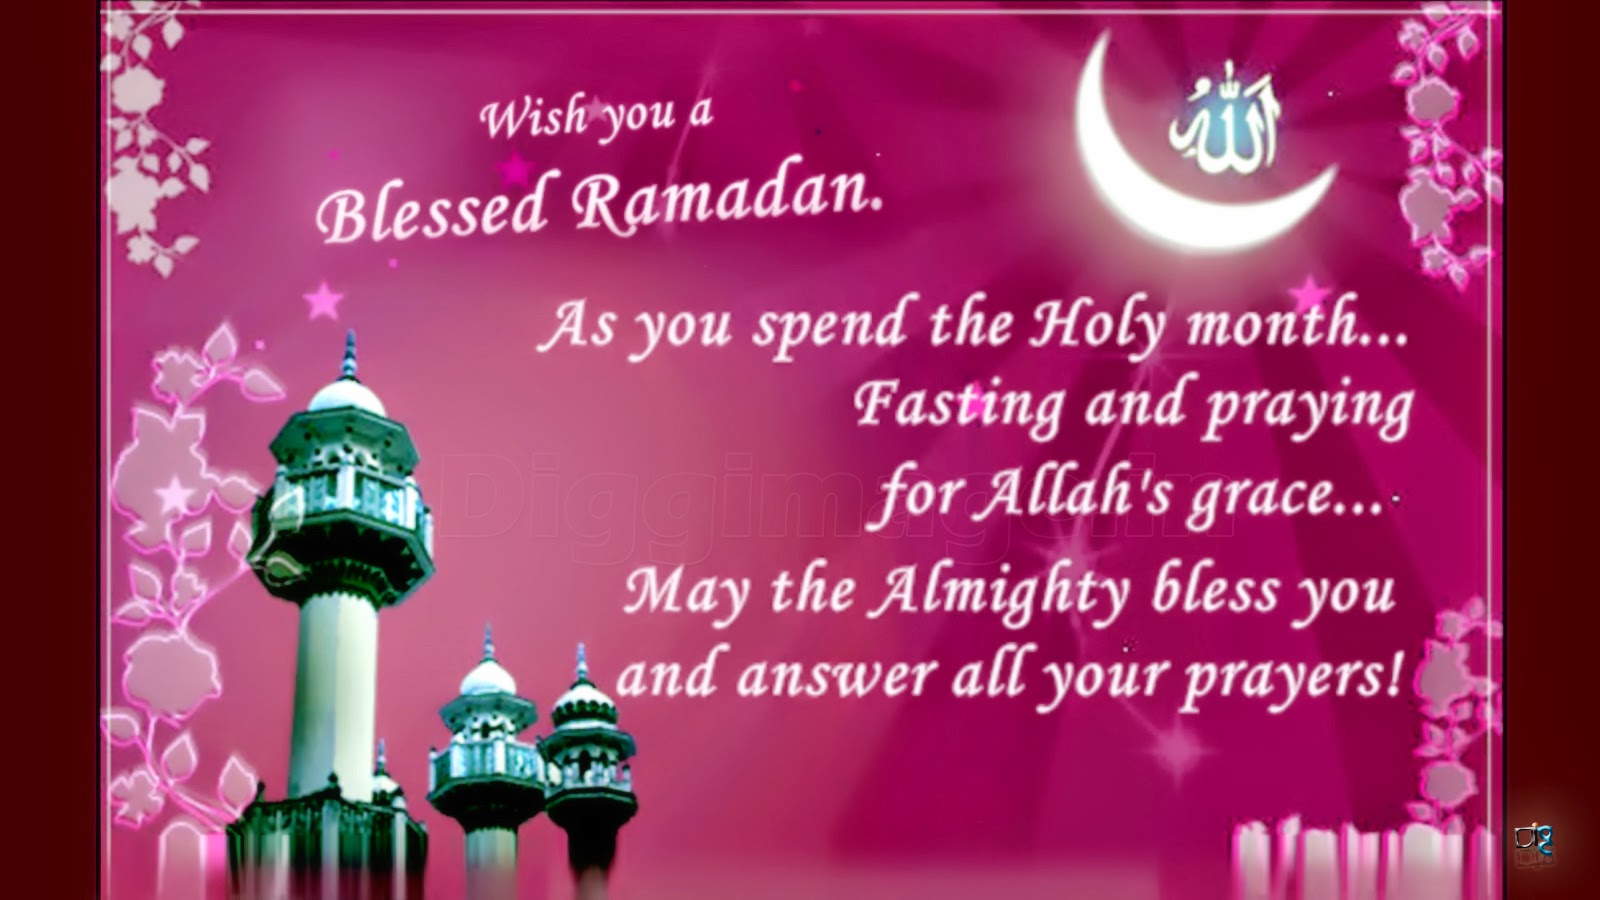 essay on ramadan blessings blessing of ramadan essay kidakitap com best wishes messages related gcse hajj essays